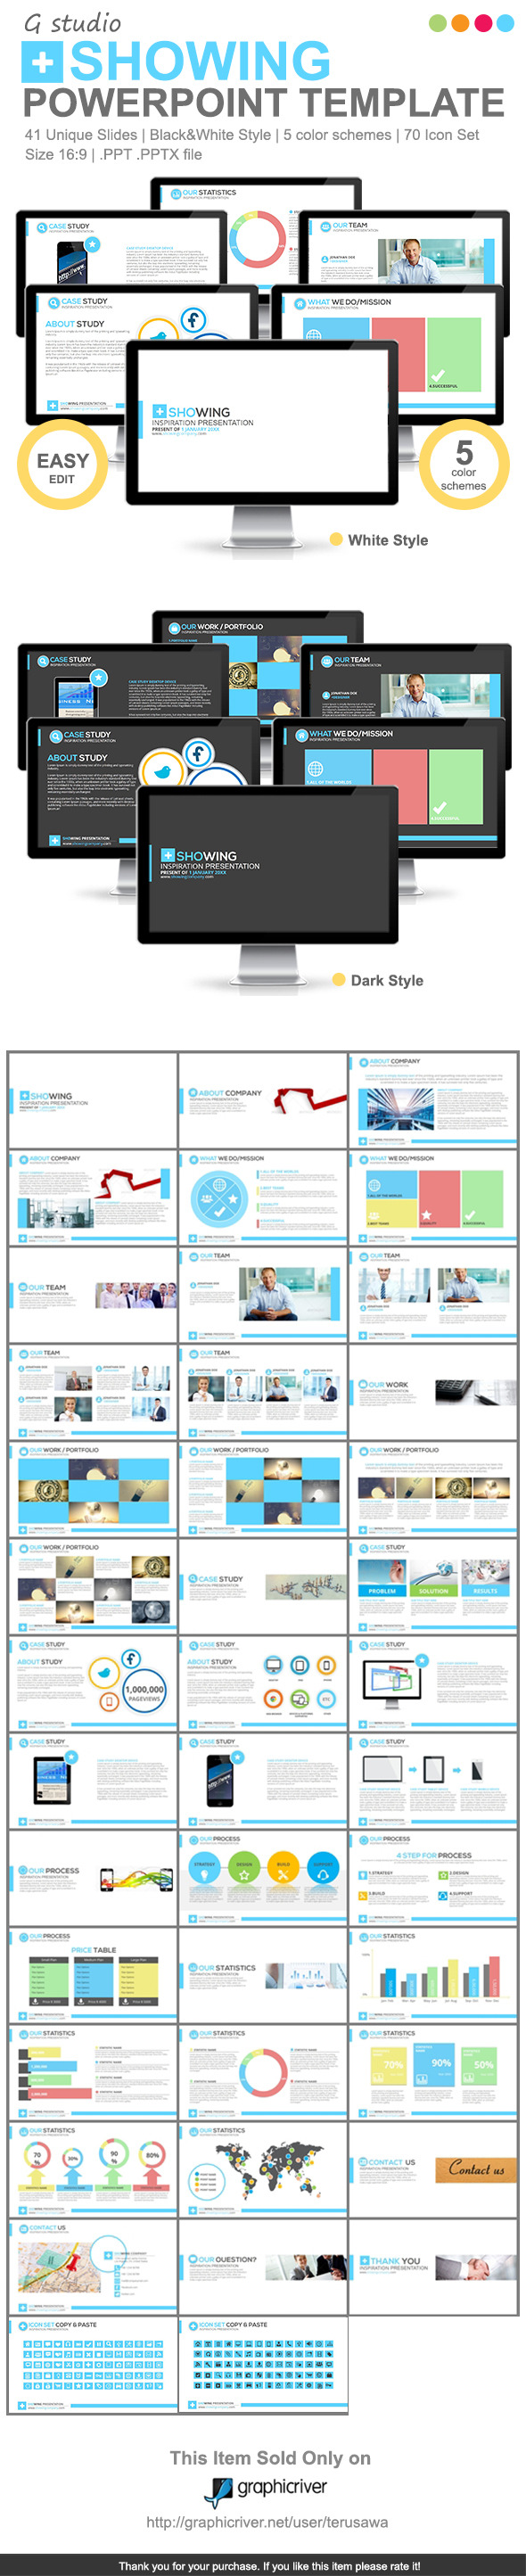 Gstudio Showing Powerpoint Template - Business PowerPoint Templates